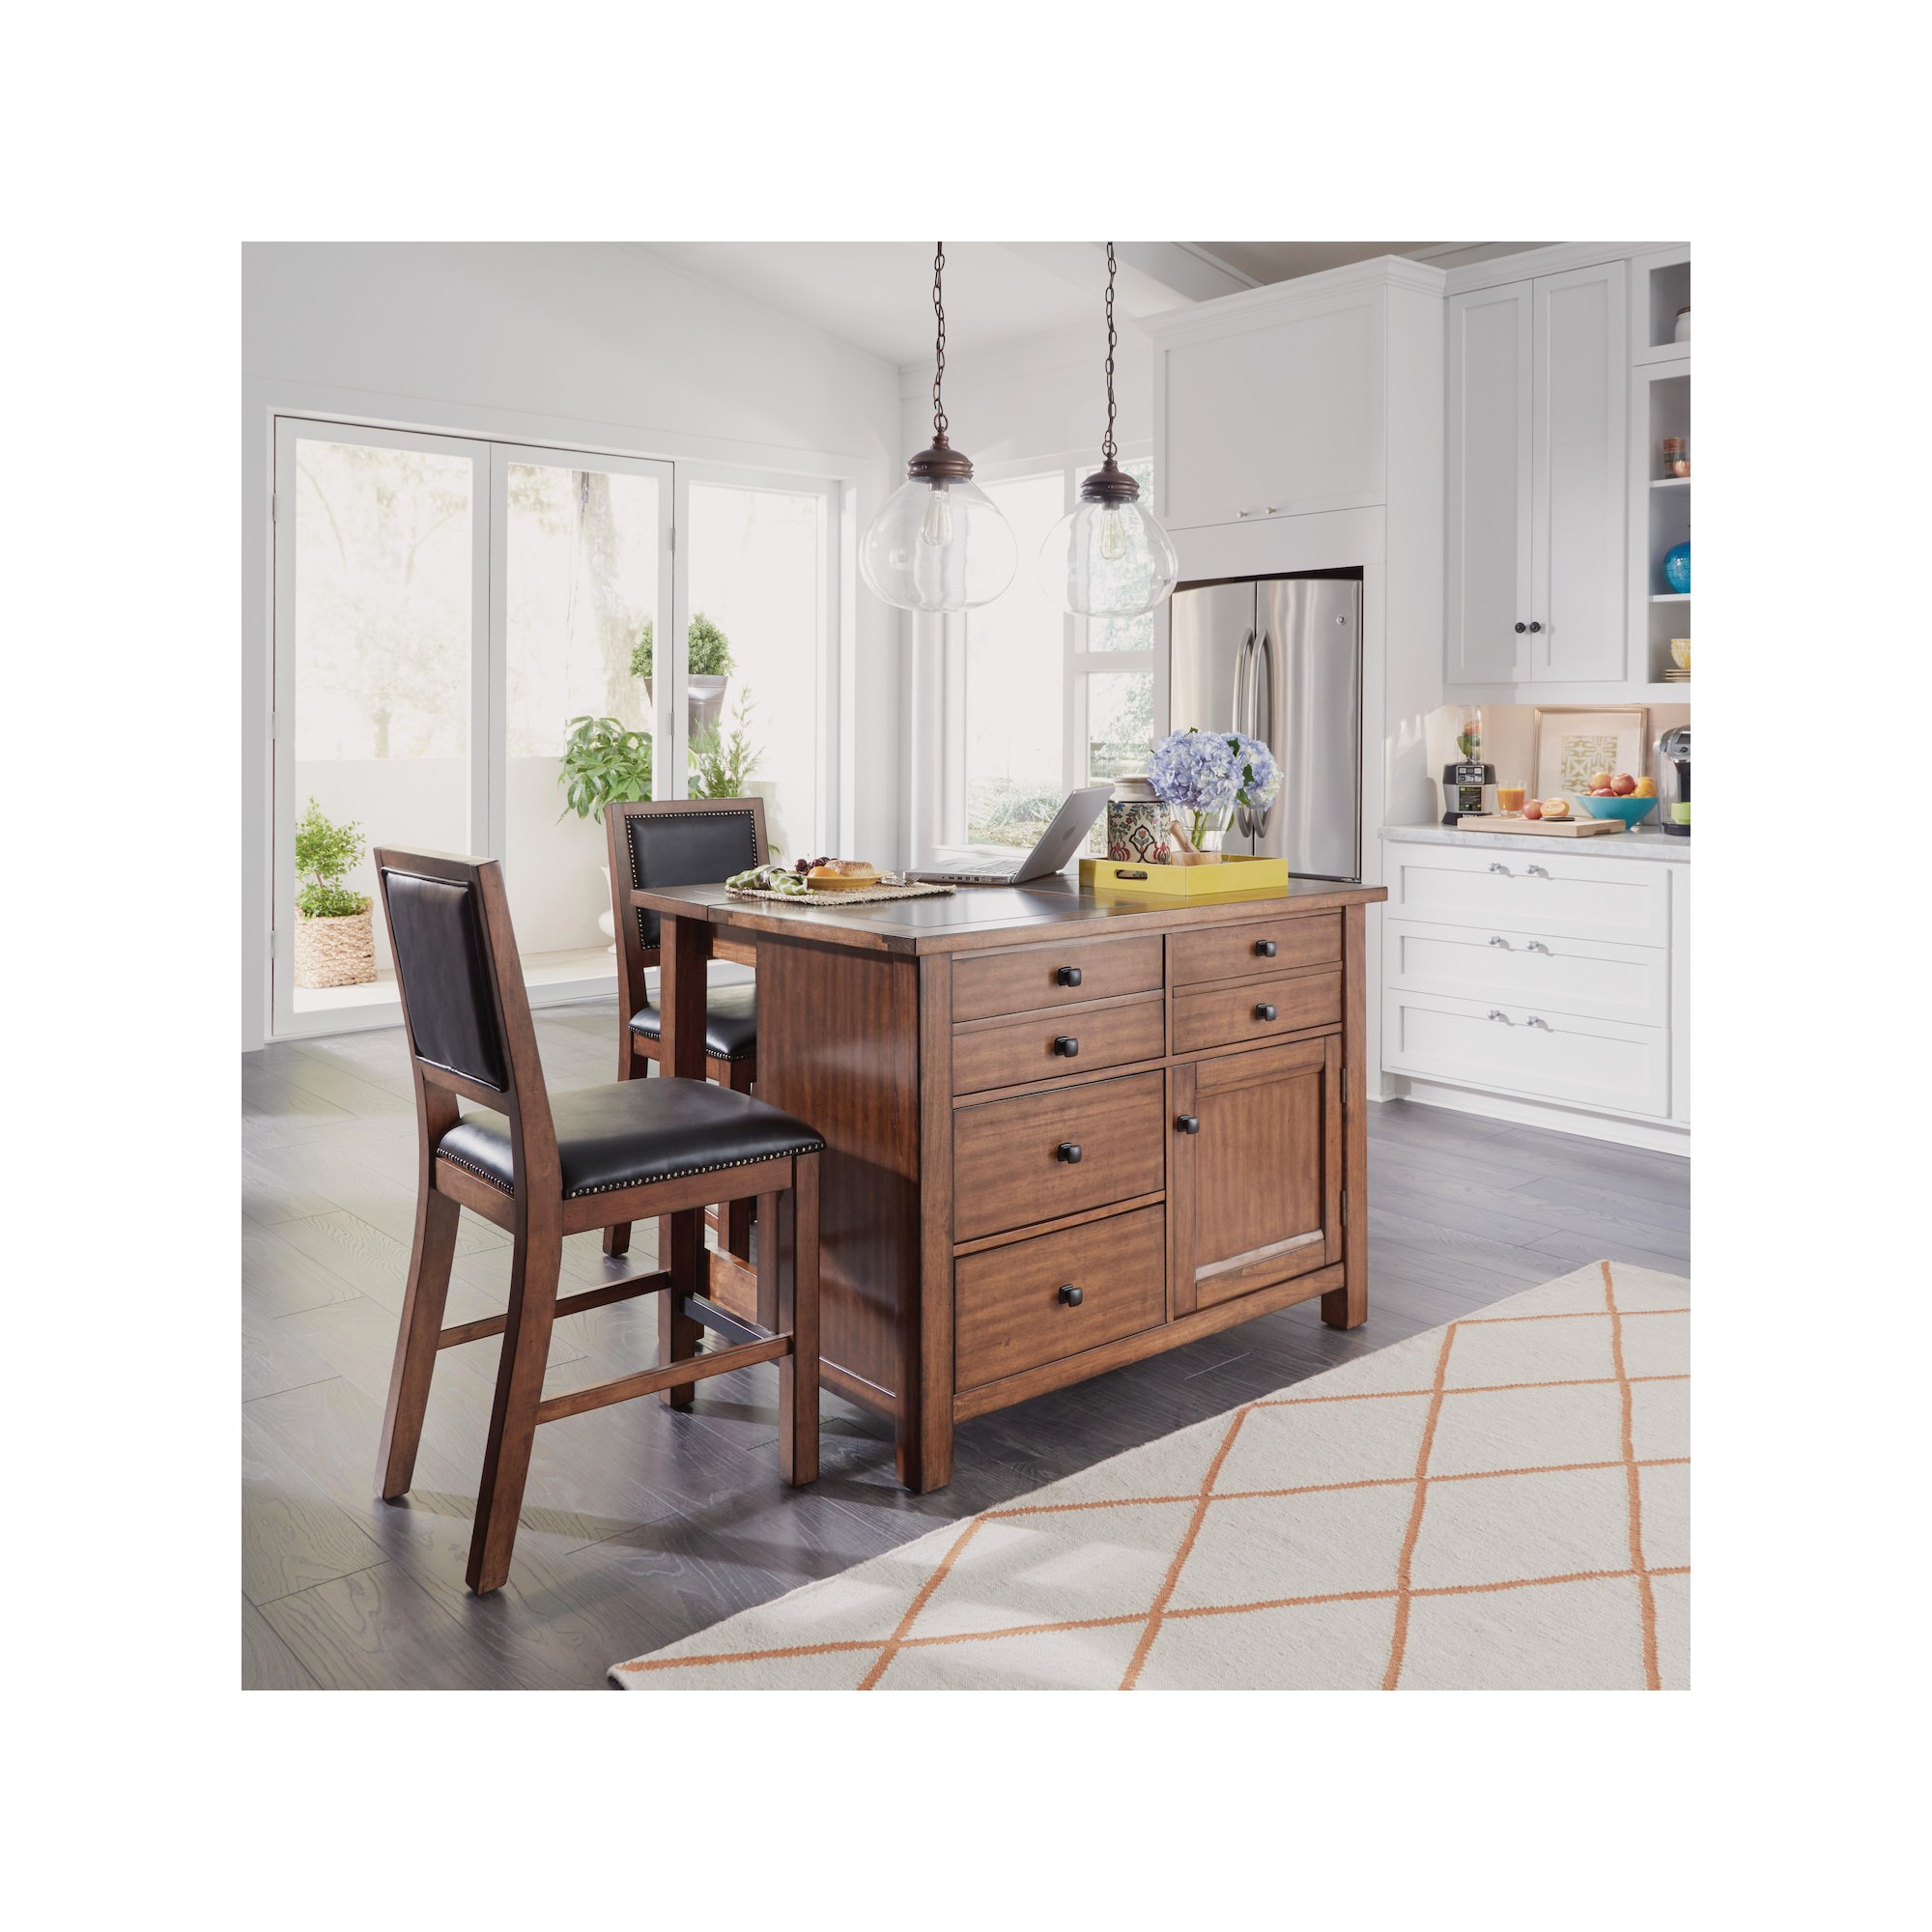 Tahoe Quartz Top Kitchen Island And 2 Stools Aged Maple Home Styles Brown Kitchen Island With Granite Top Kitchen Tops Portable Kitchen Island